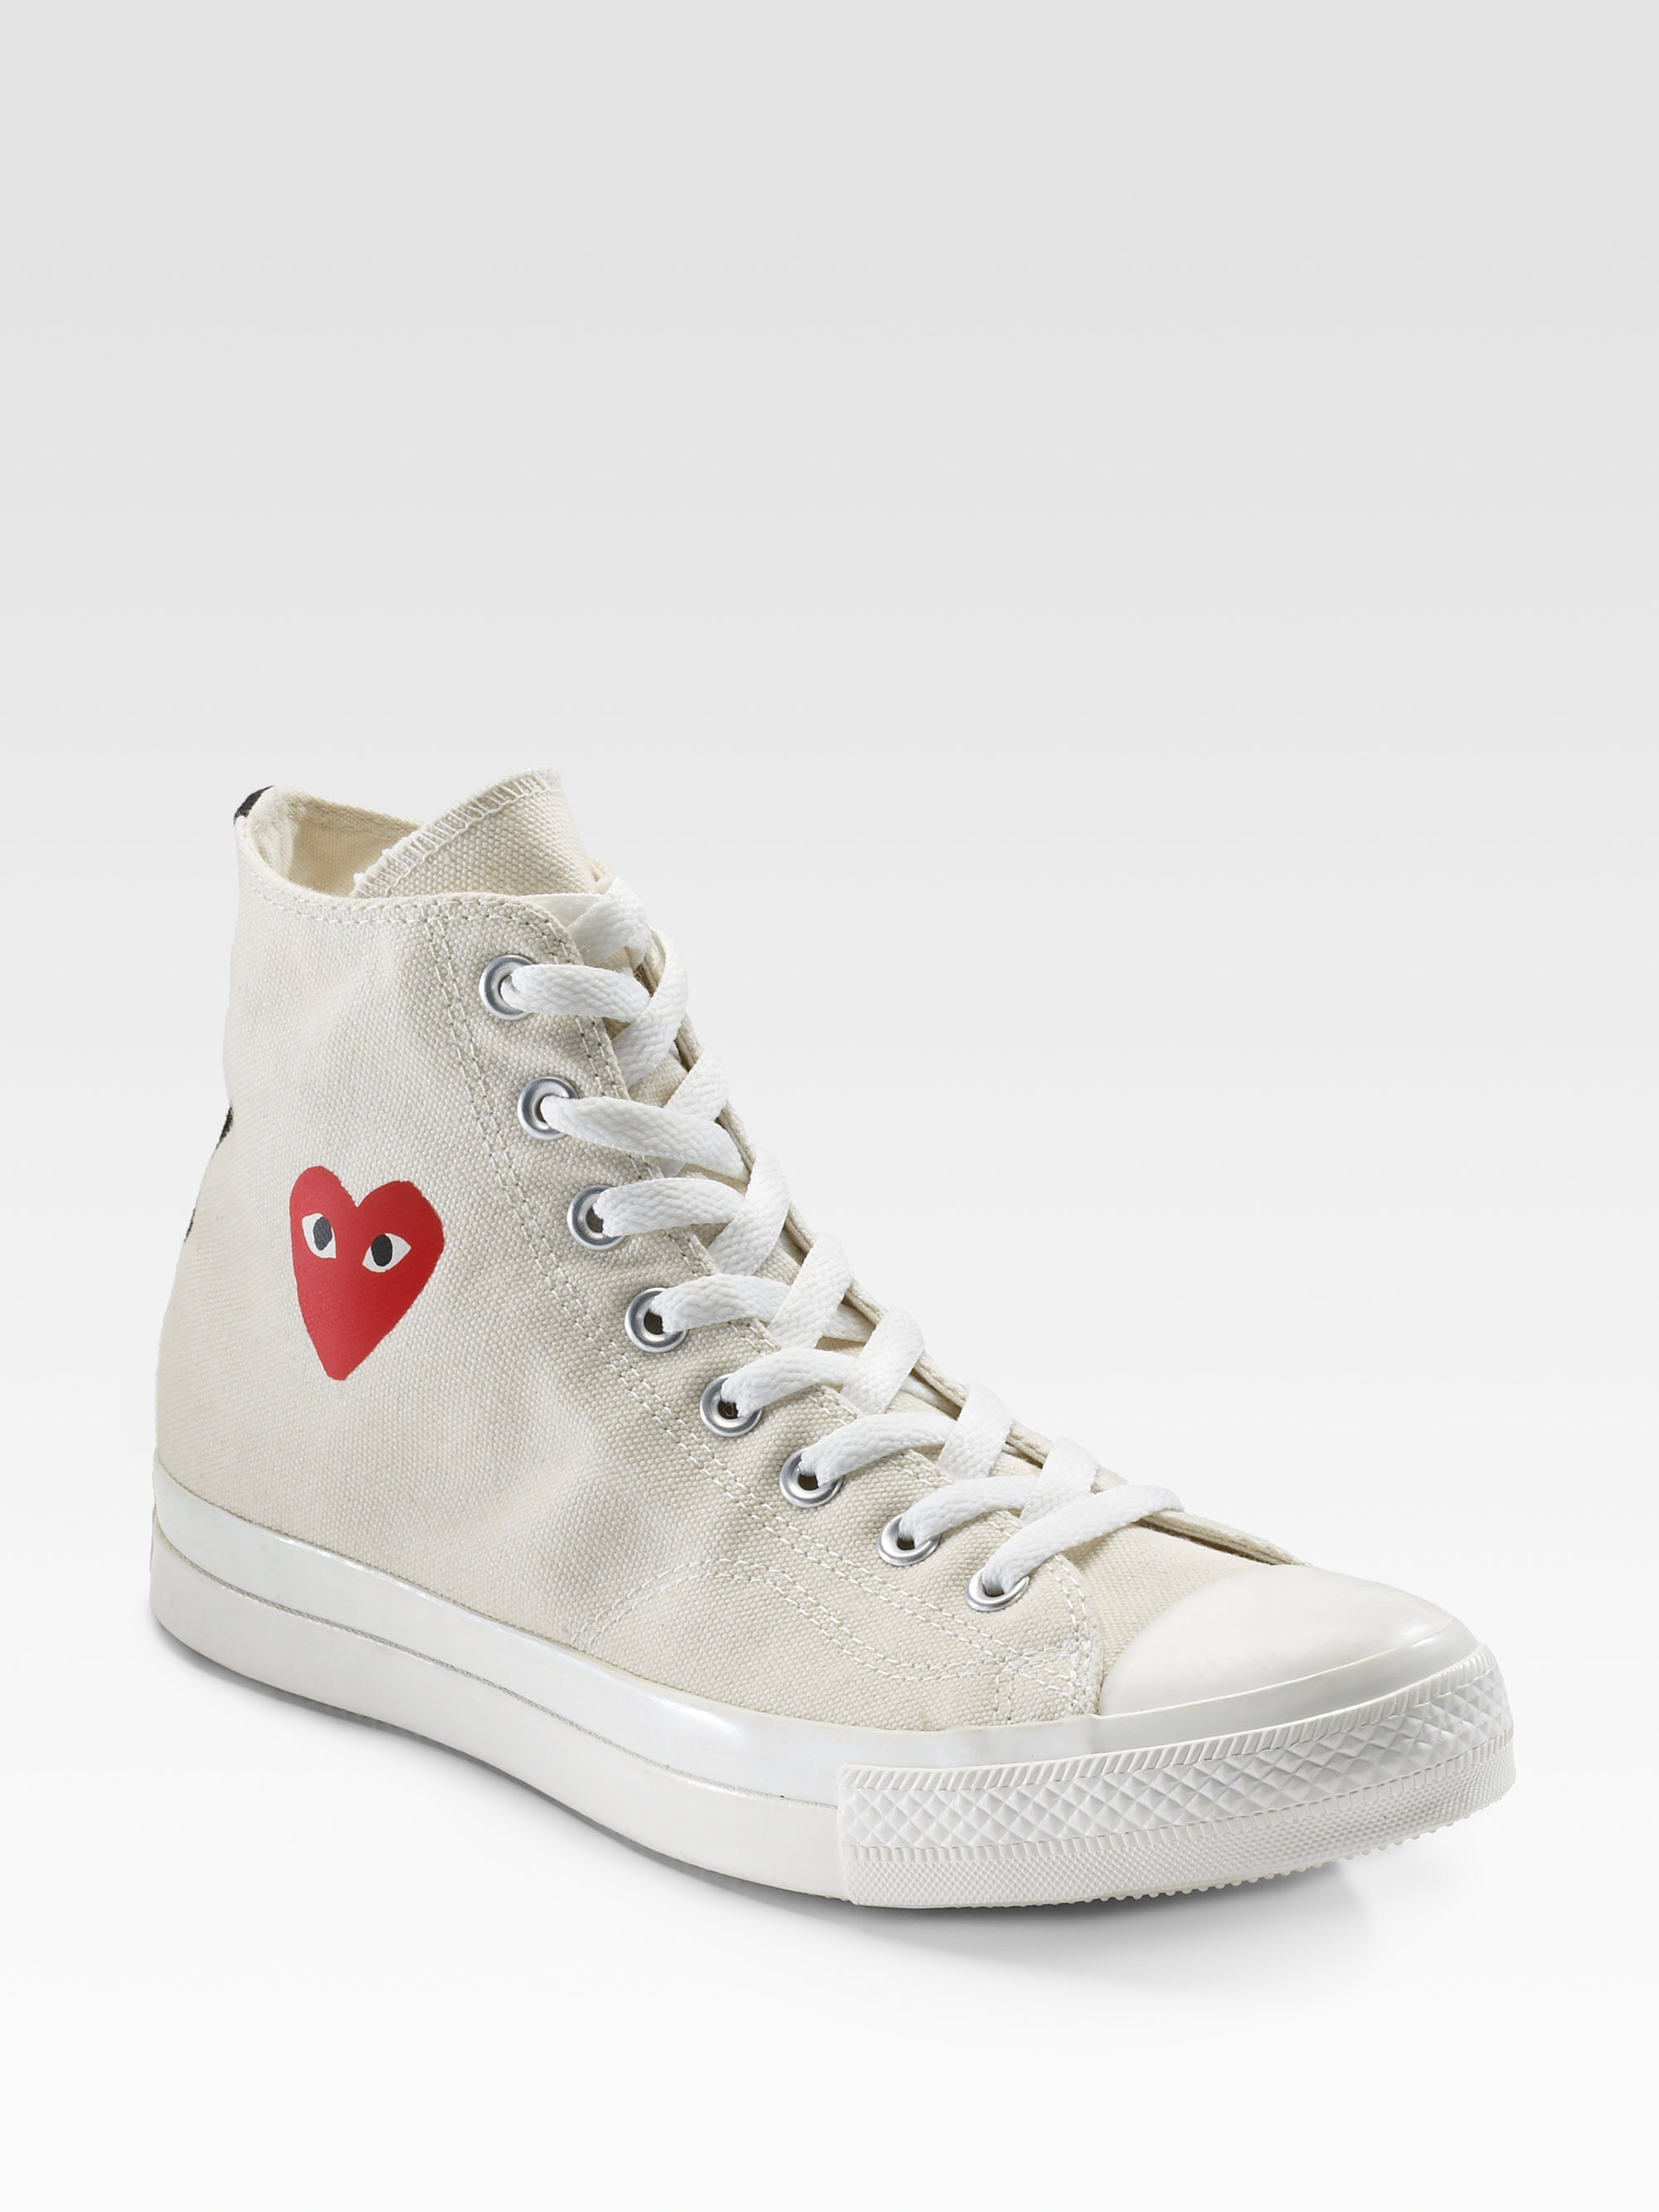 faac03a1a7eb Play Comme des Garçons High-top Canvas Sneakers in White - Lyst